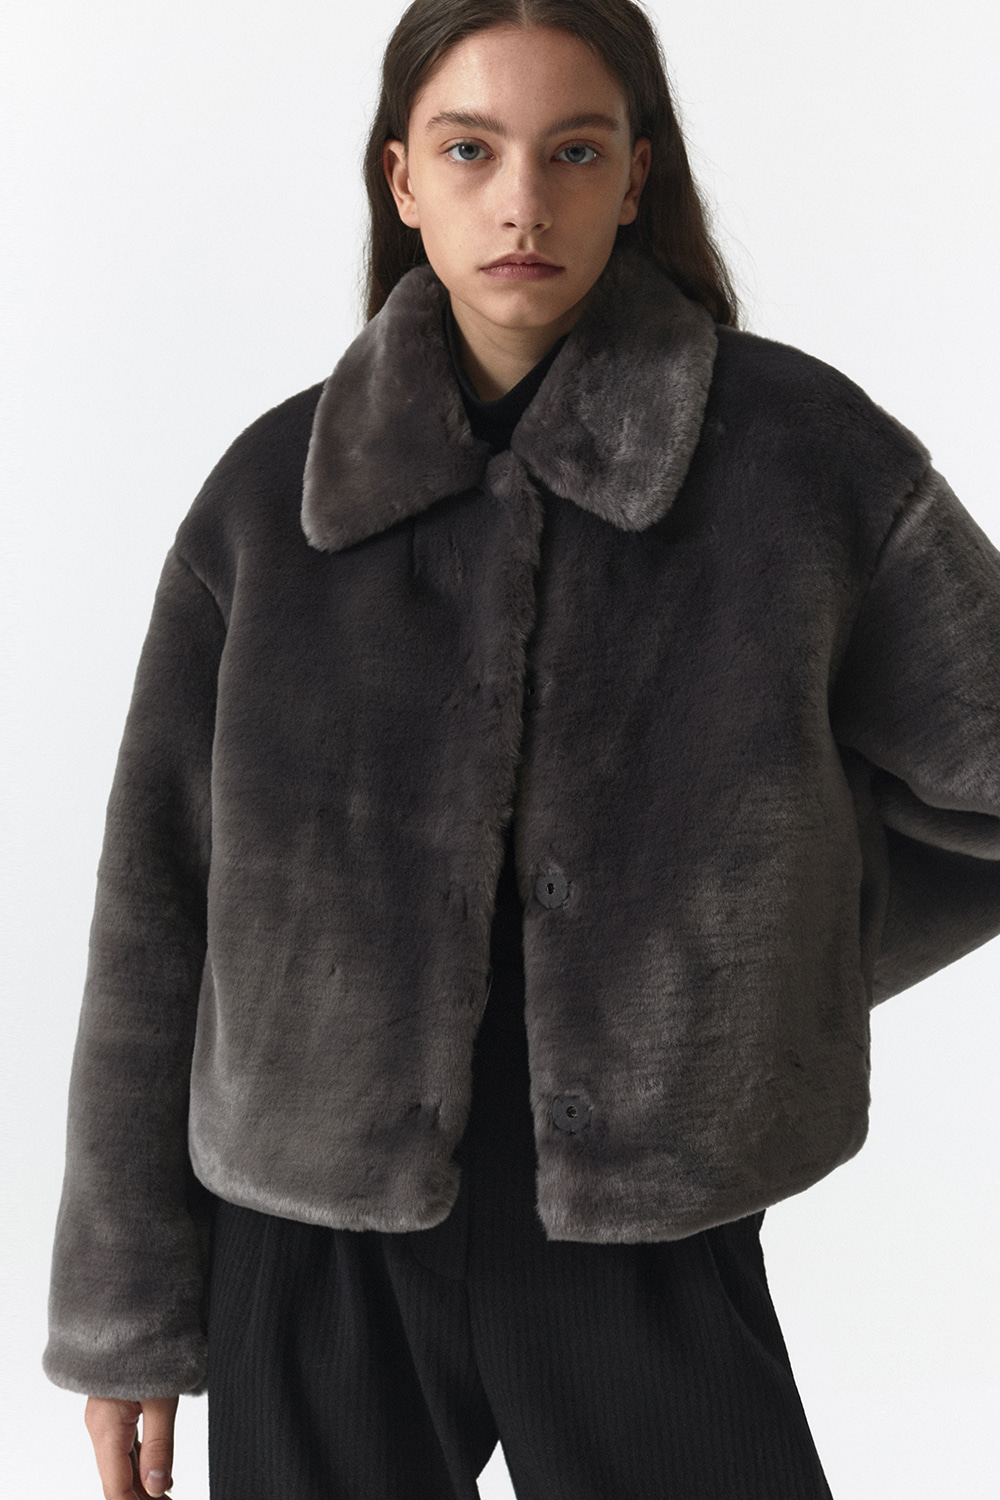 Fur Crop Jacket Women JA [Charcoal Gray]